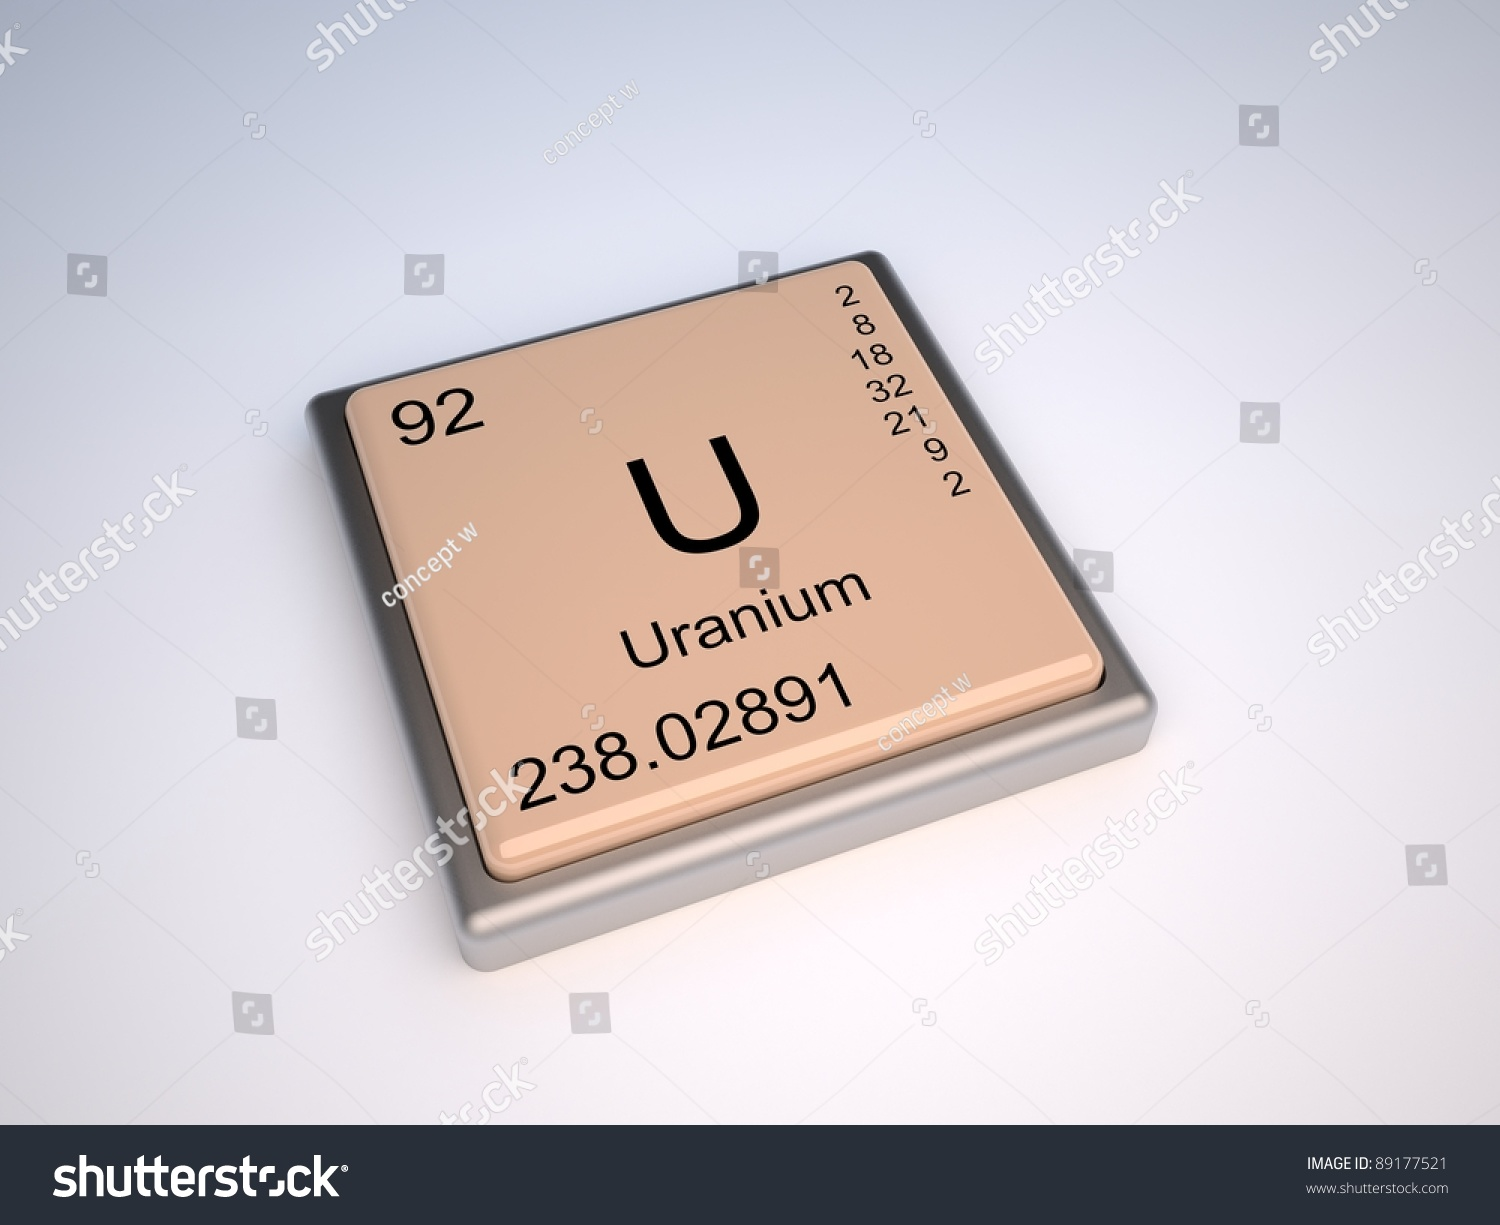 Uranium element periodic table stock illustration 89177521 uranium element of the periodic table gamestrikefo Image collections